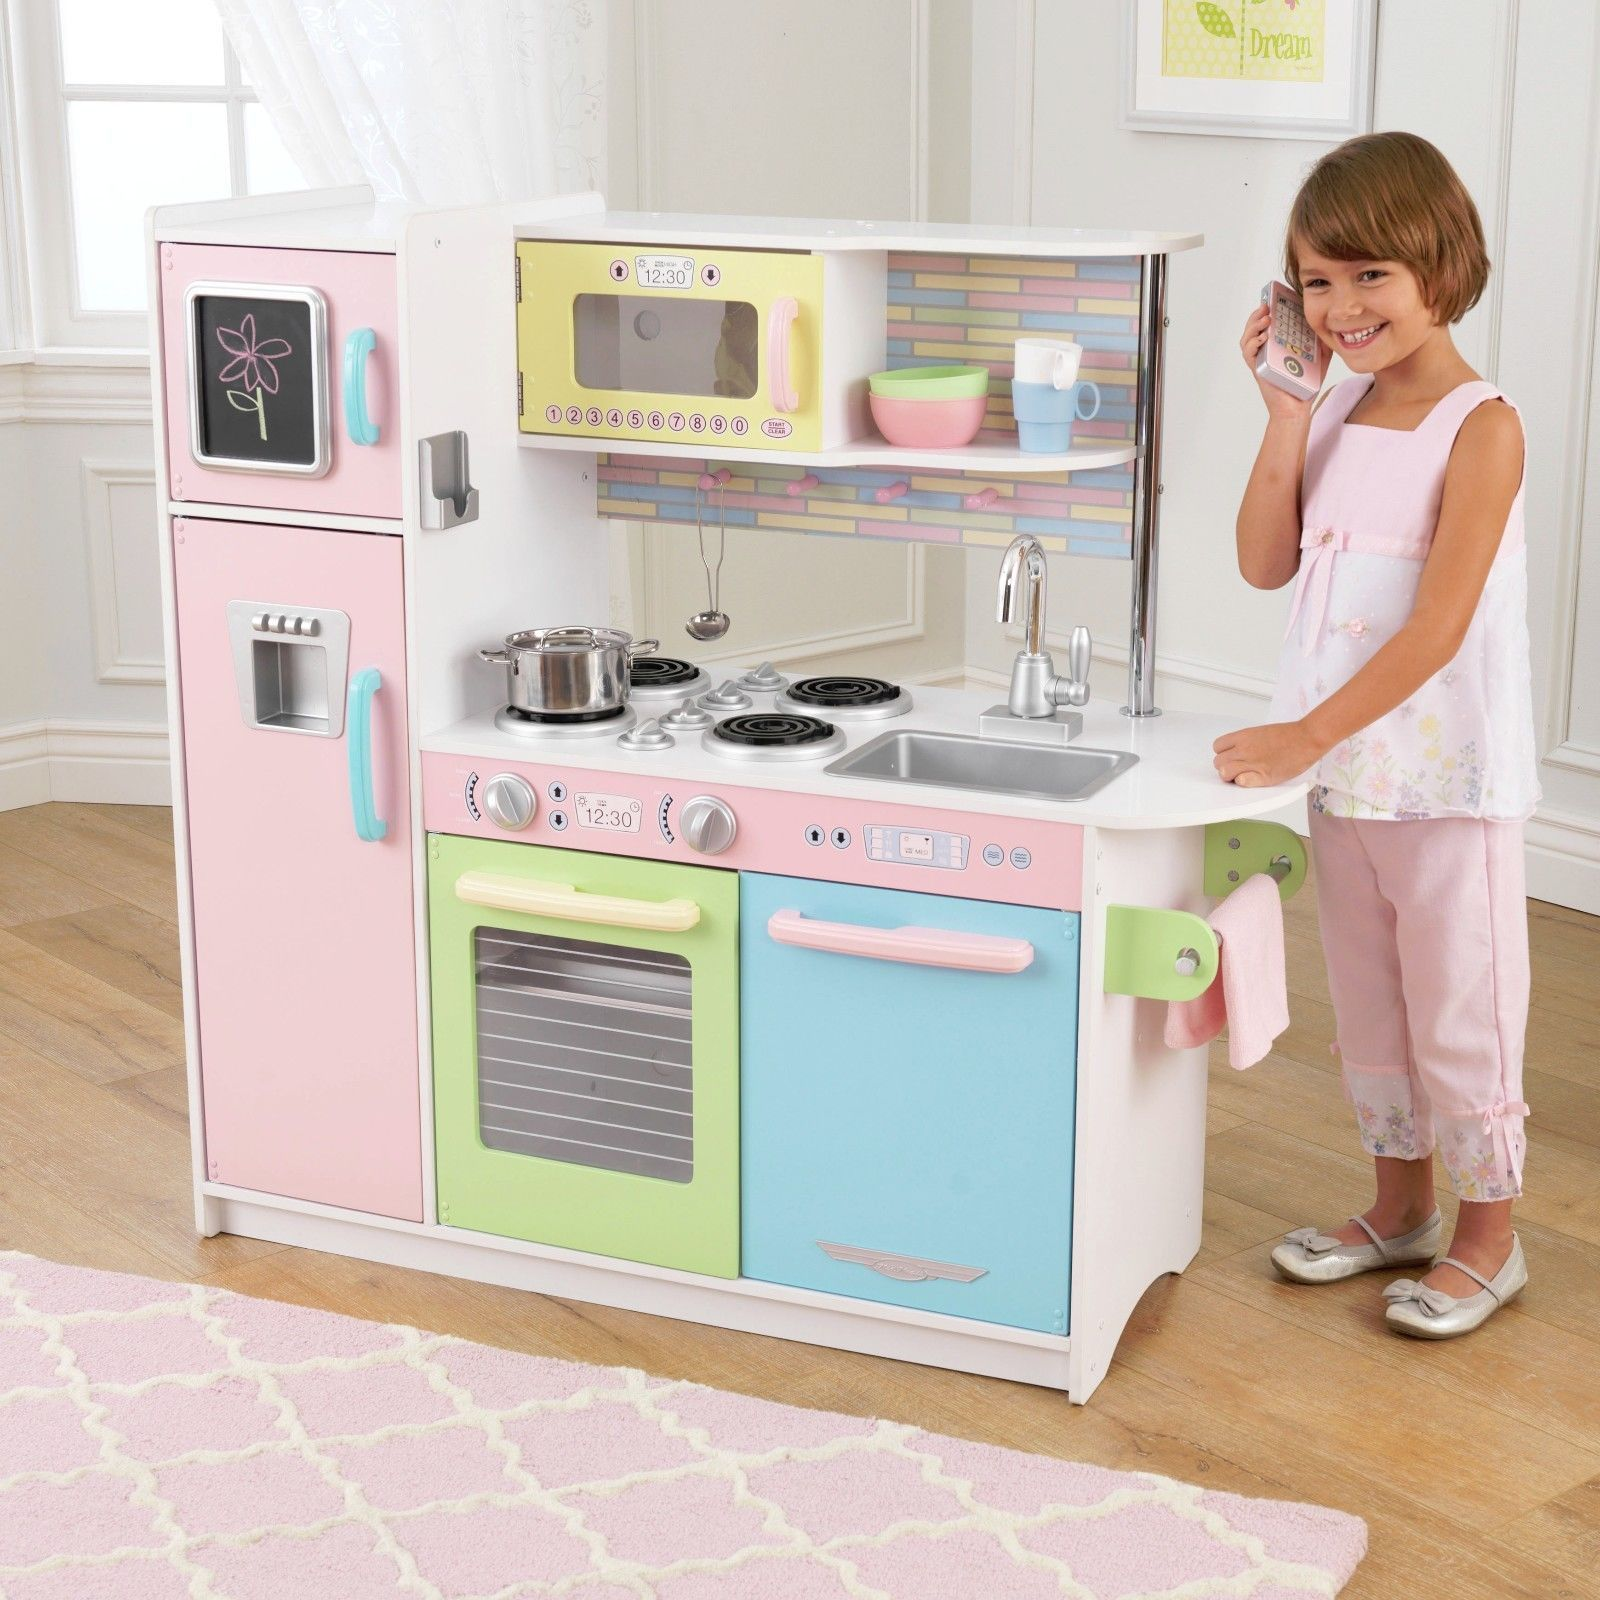 Kidkraft Large Pastel Kitchen Playset Wooden Kid Toddler Pretend Play